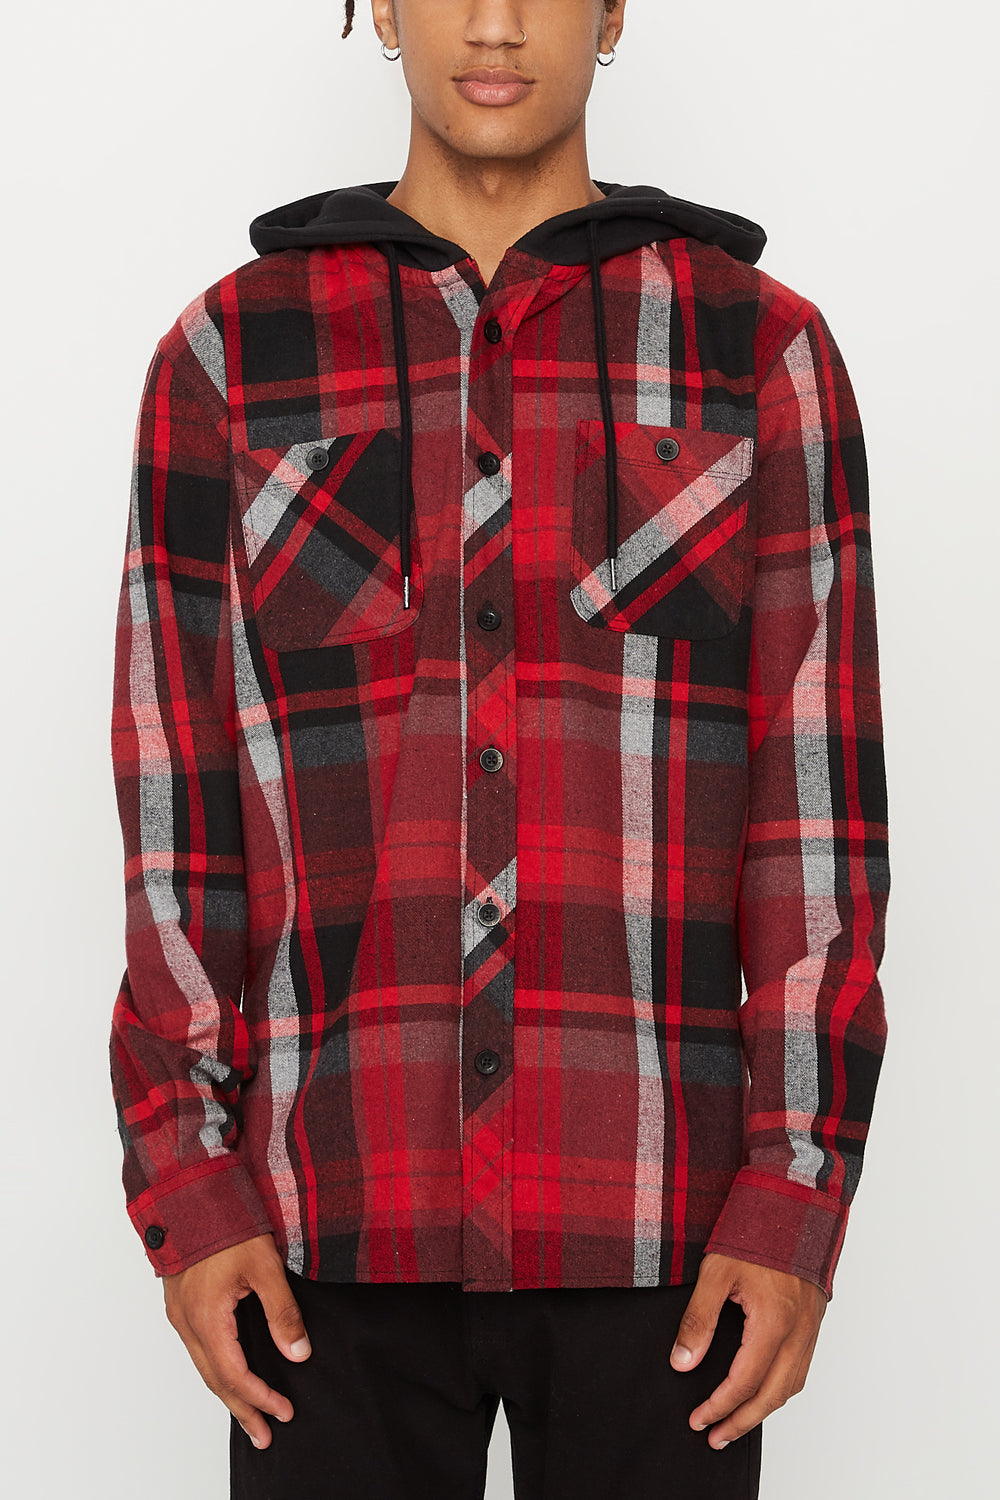 West49 Mens Flannel Hooded Button-Up Shirt Red